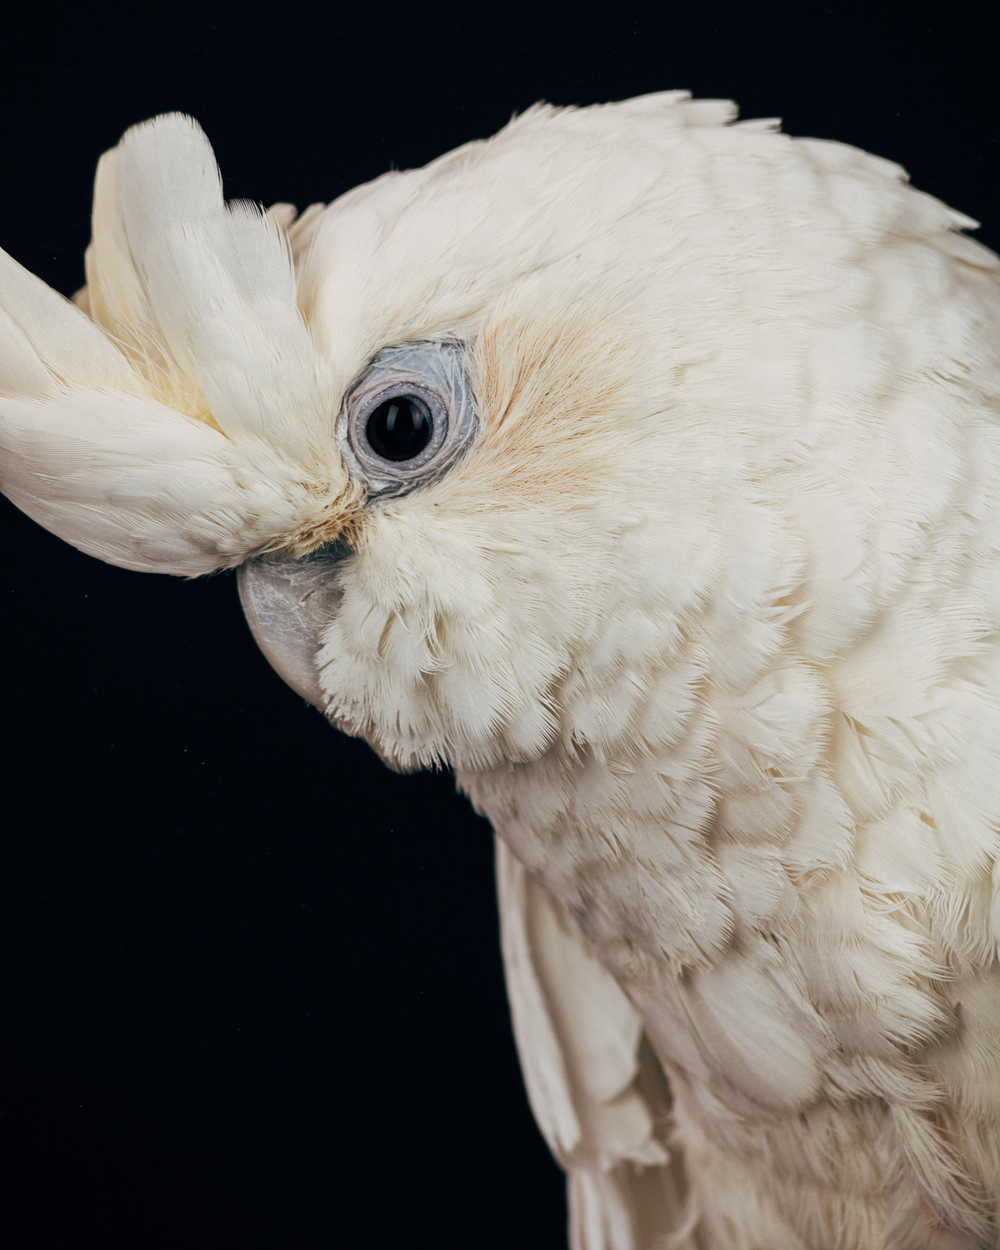 MALCOLM    Male. Philippine Red Vented cockatoo                                 (cacatua haematuropygia)  Age: 25    Owner passed away. Arrived at the sanctuary with several tumors which have turned out to be benign. One wing is frozen and the other was broken but healed without obvious medical intervention.